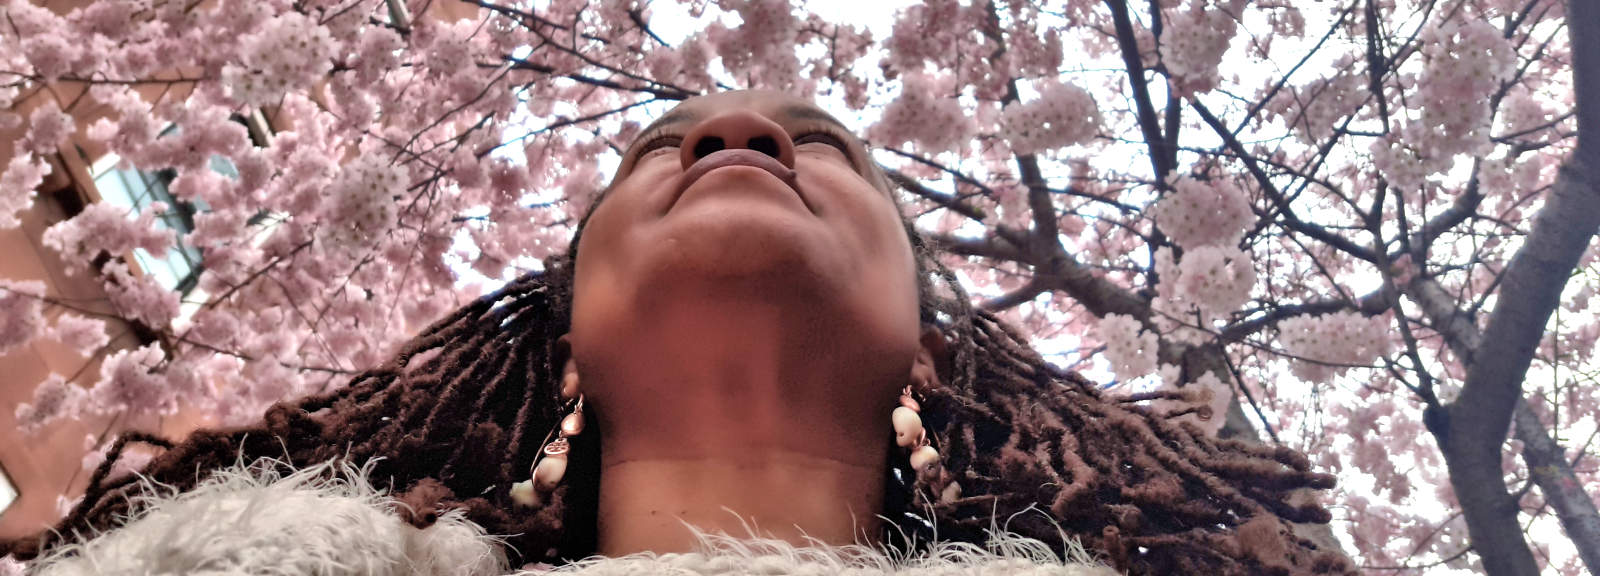 Mireille Liong Braidlocs in the Spring celebrating 15th anniversary of going-natural.com